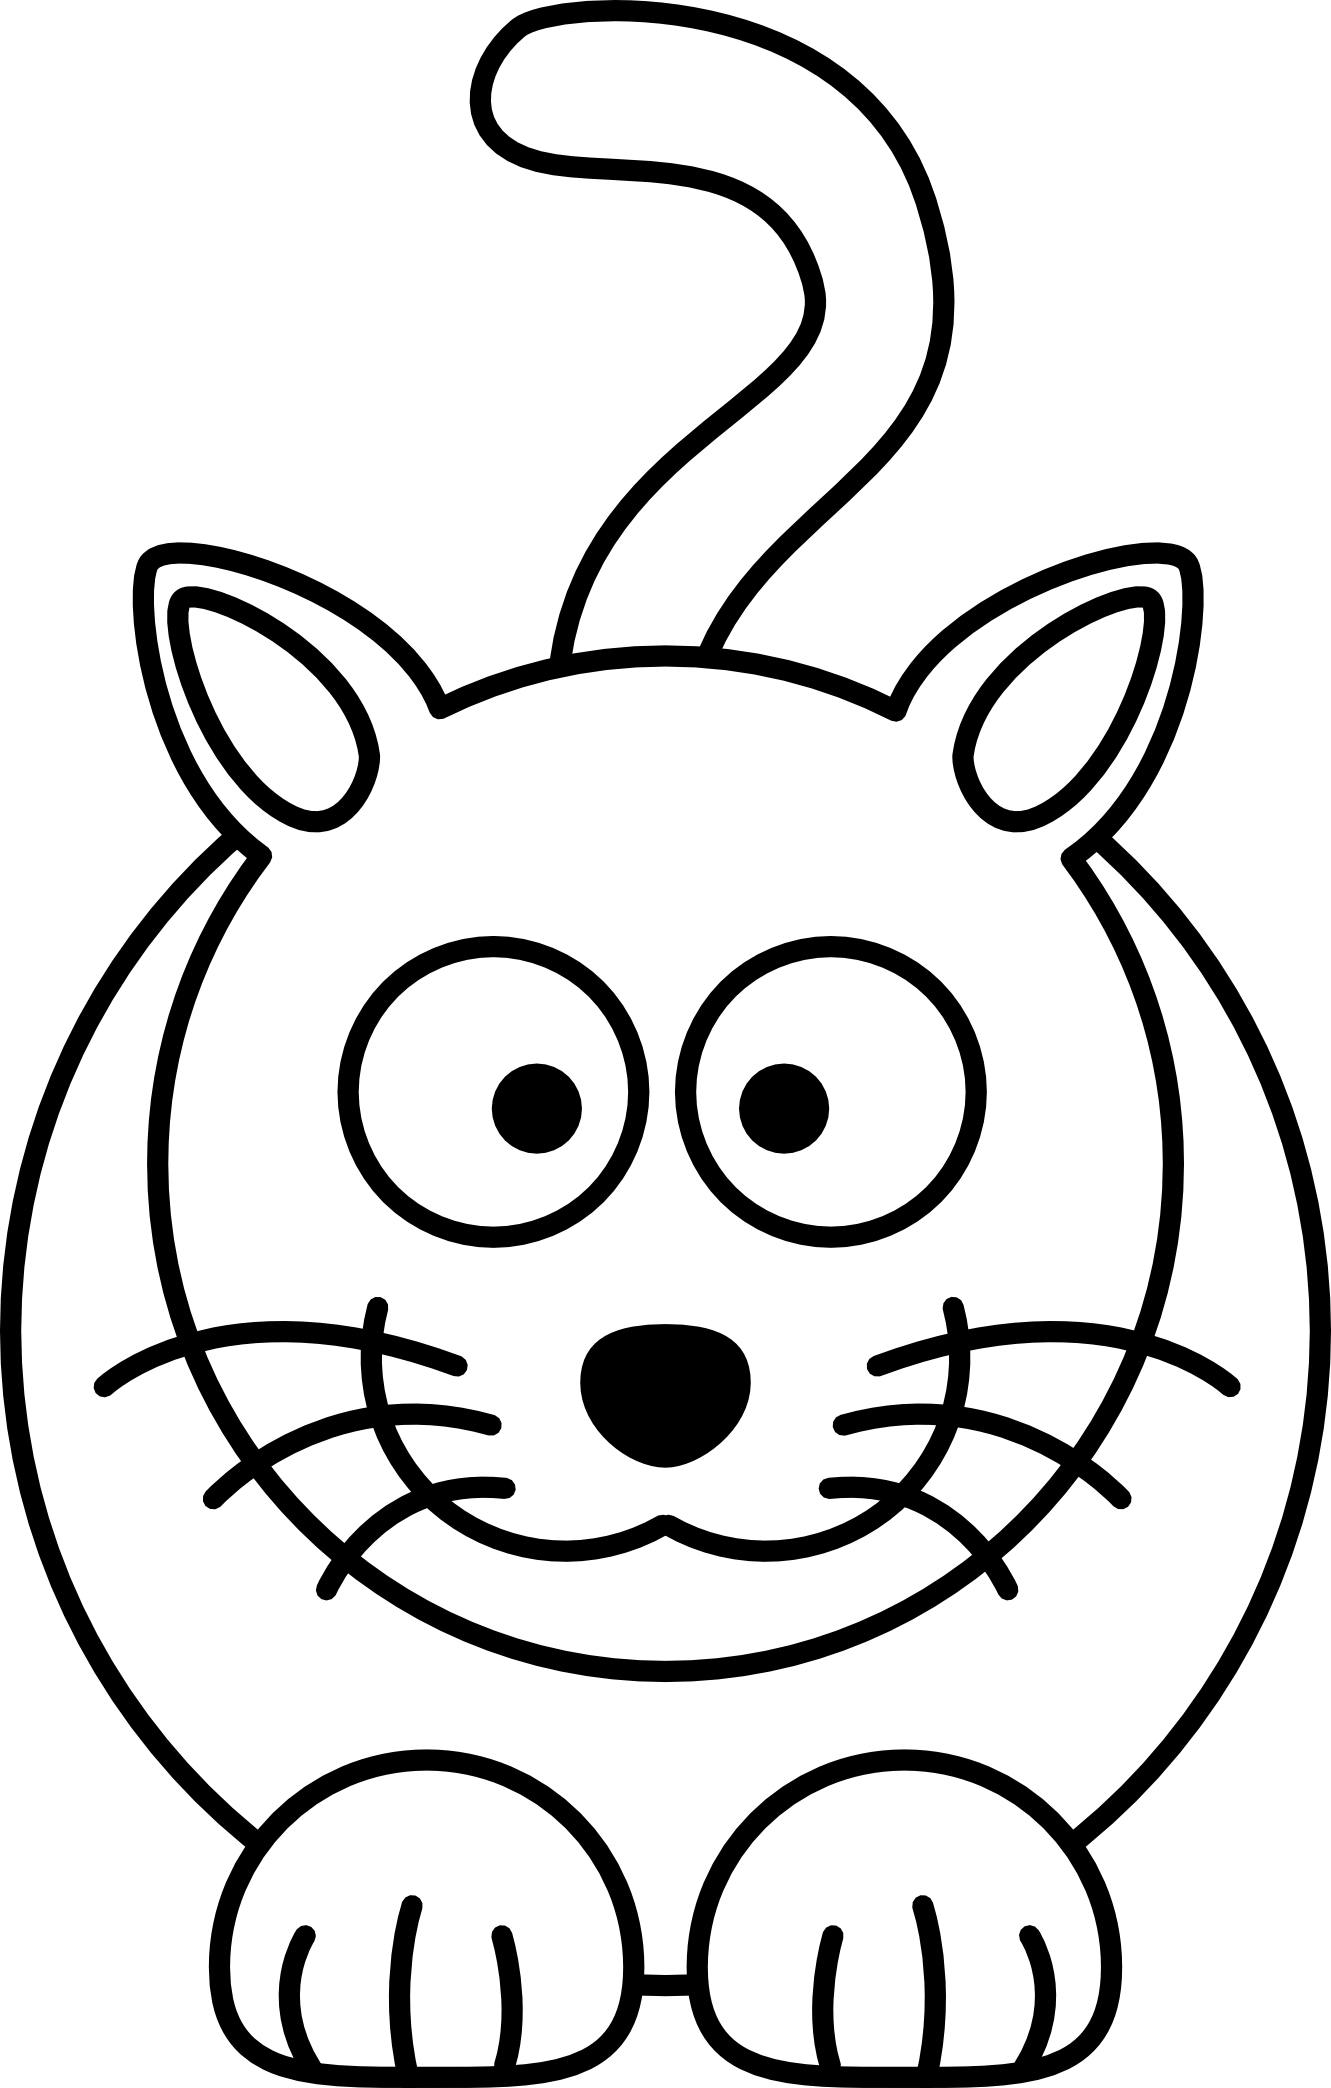 image black and white Drawing printables easy. Line of cat at